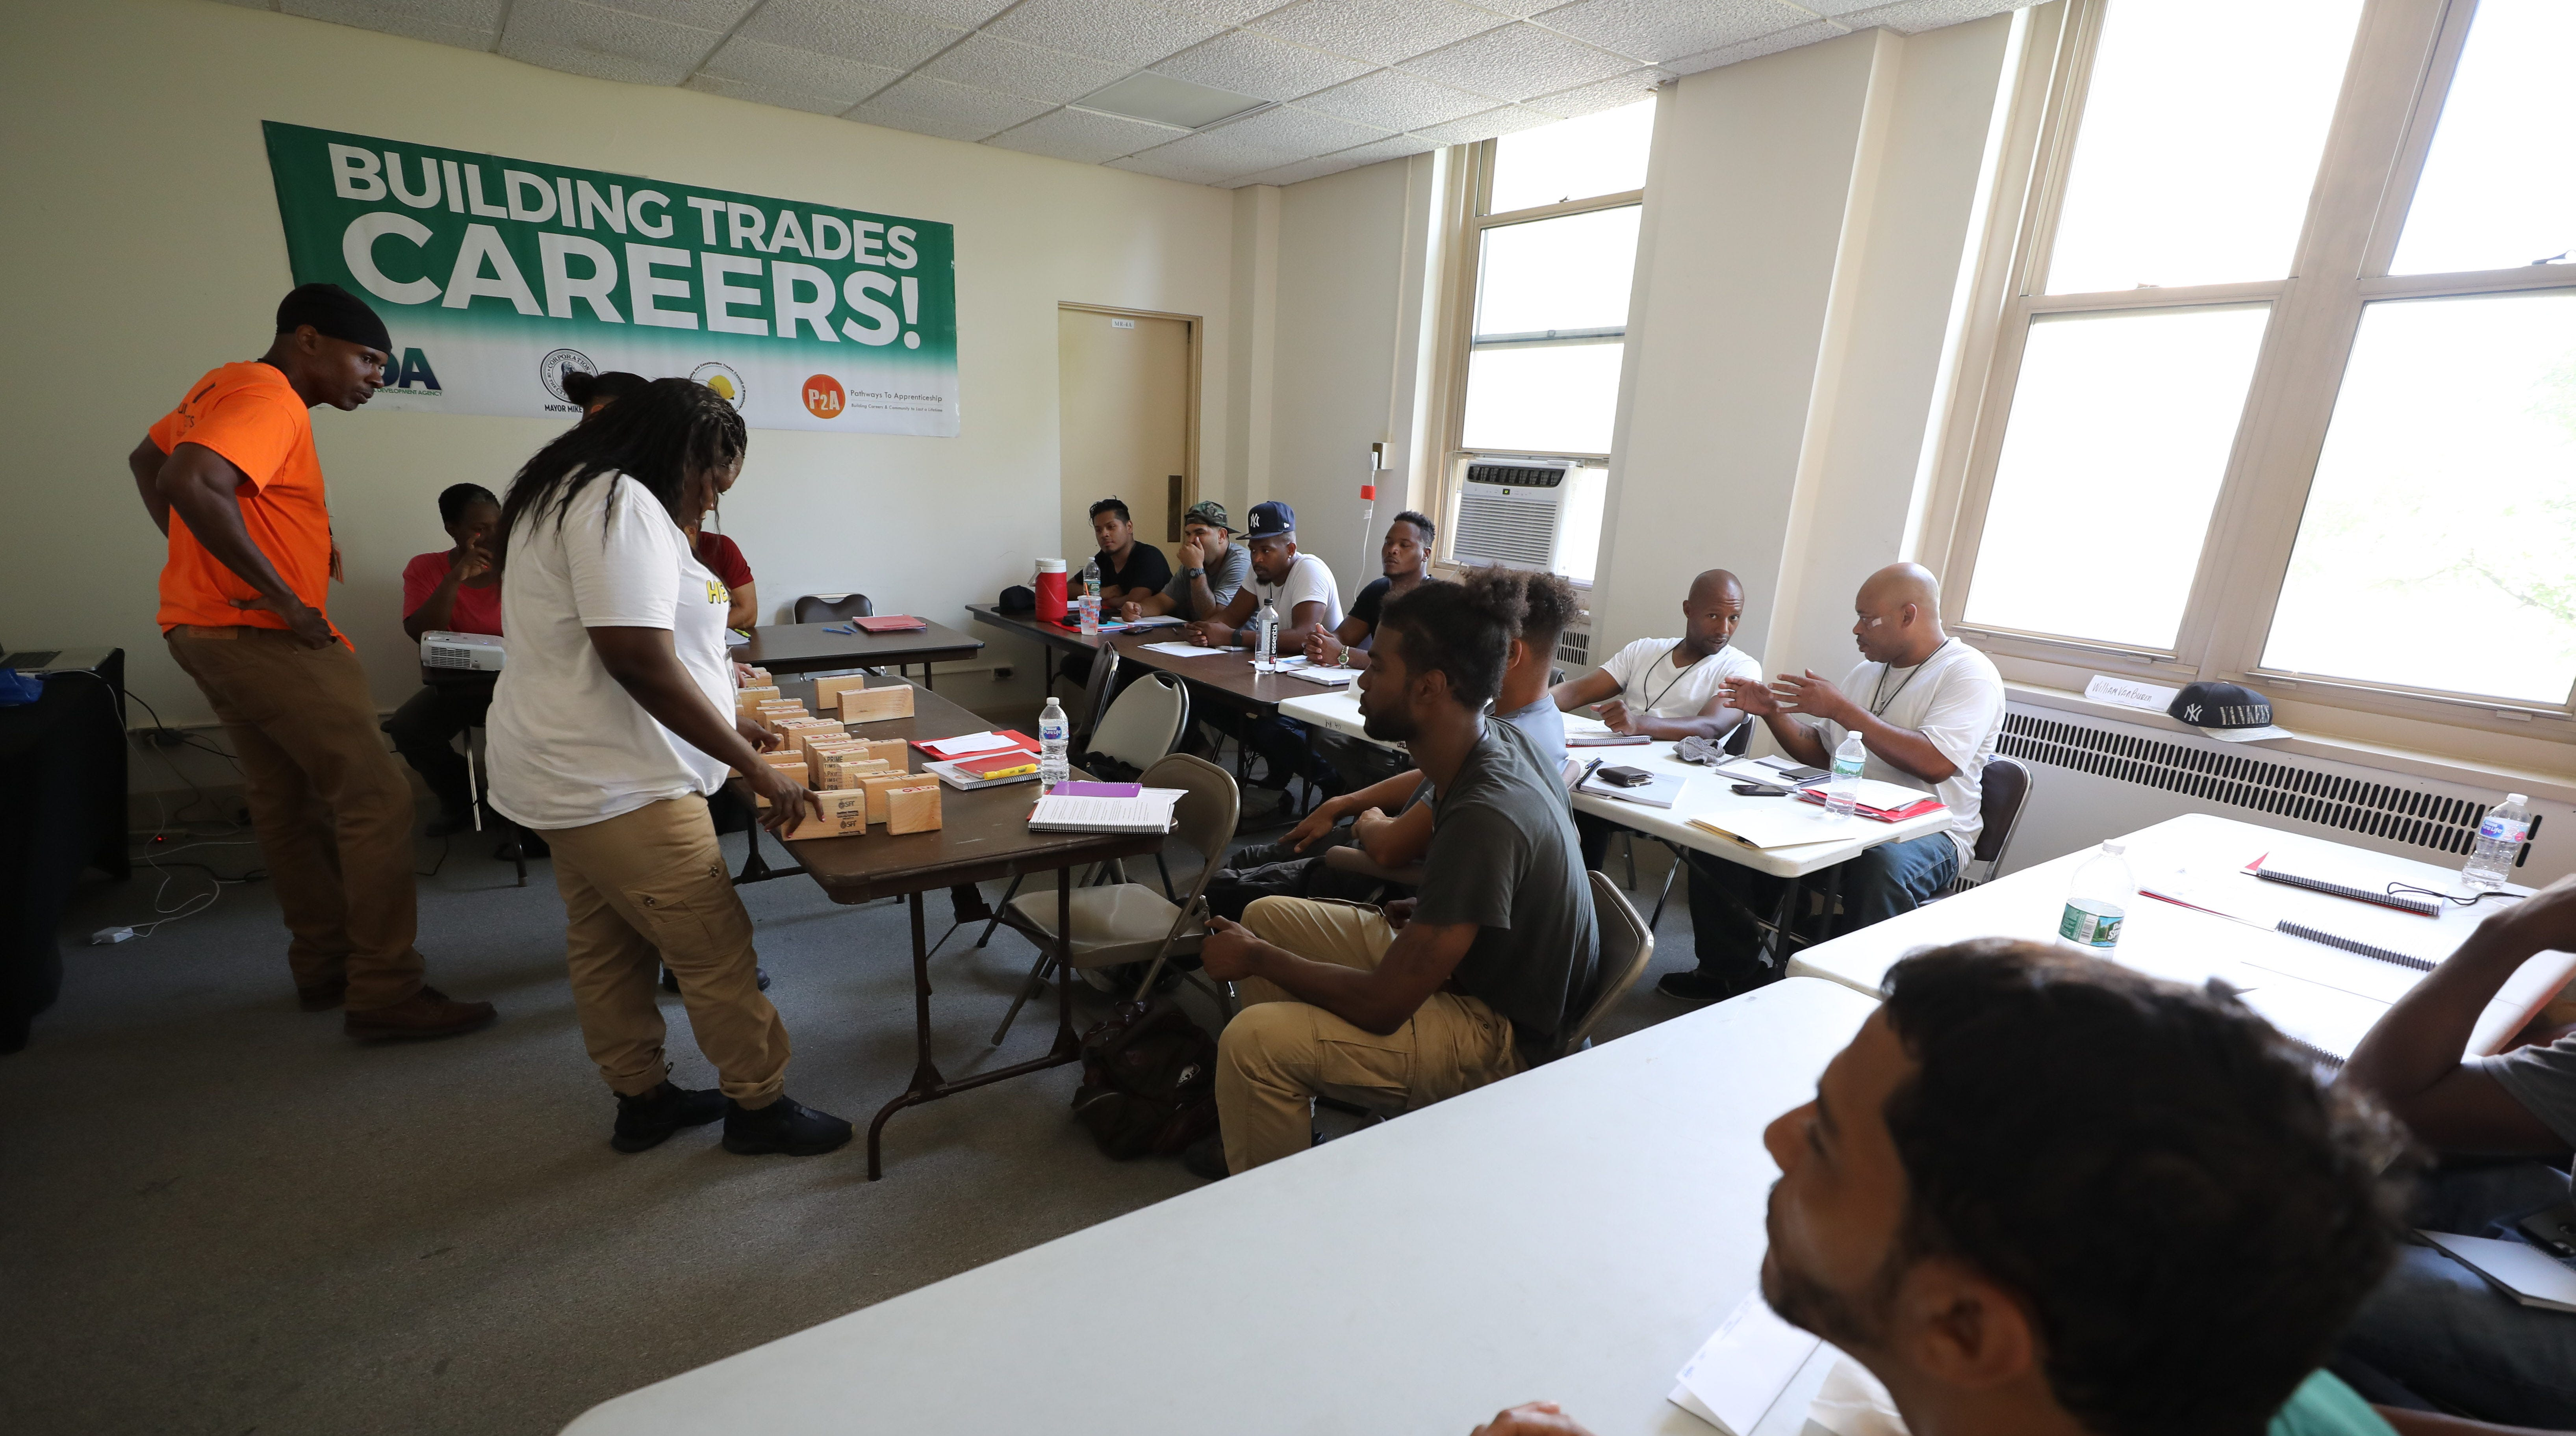 Yonkers students get trained for building trades through IDA program